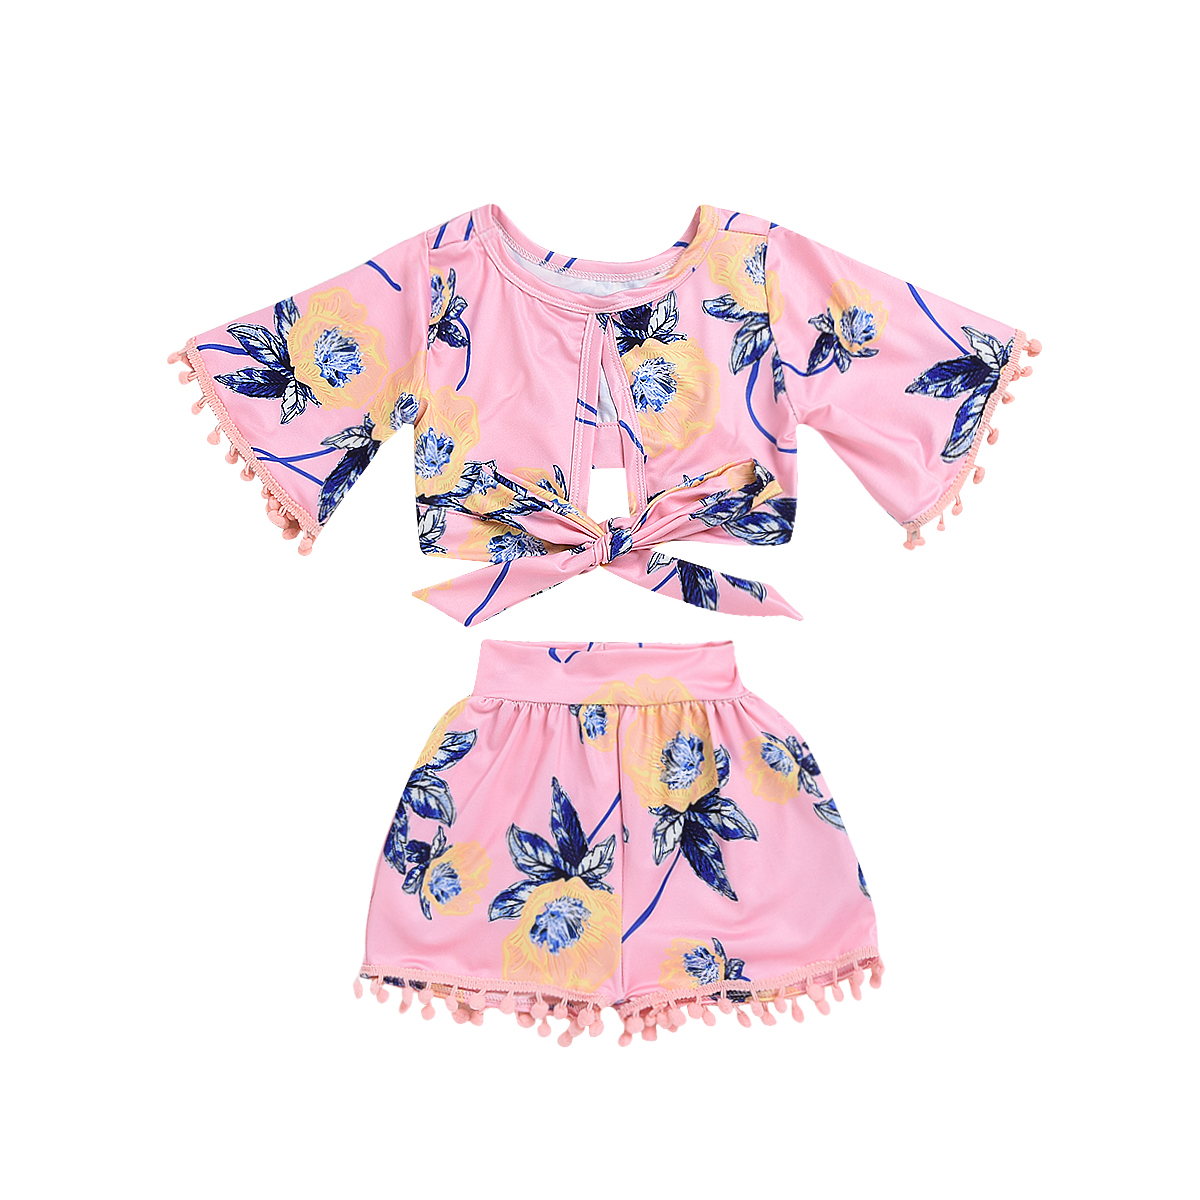 Pudcoco Toddler Girl Summer Clothing Set T-shirt Tops+Short Pants Outfits Kids Baby Girl Flower Tassel Clothes 2pcs цена